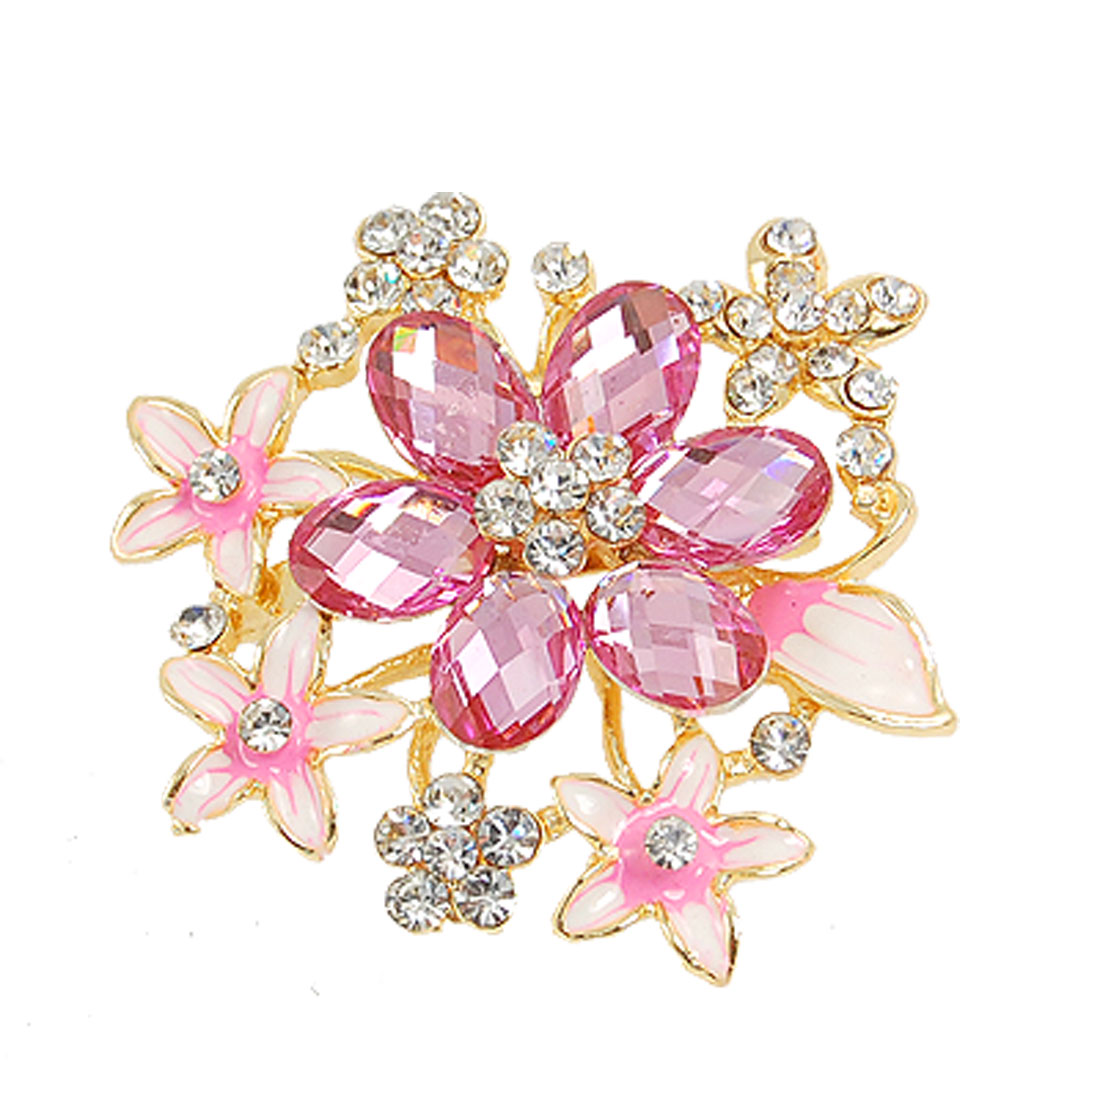 Sparkling Crystal Rhinestone Floral Safety Pin Brooch Pink for Lady